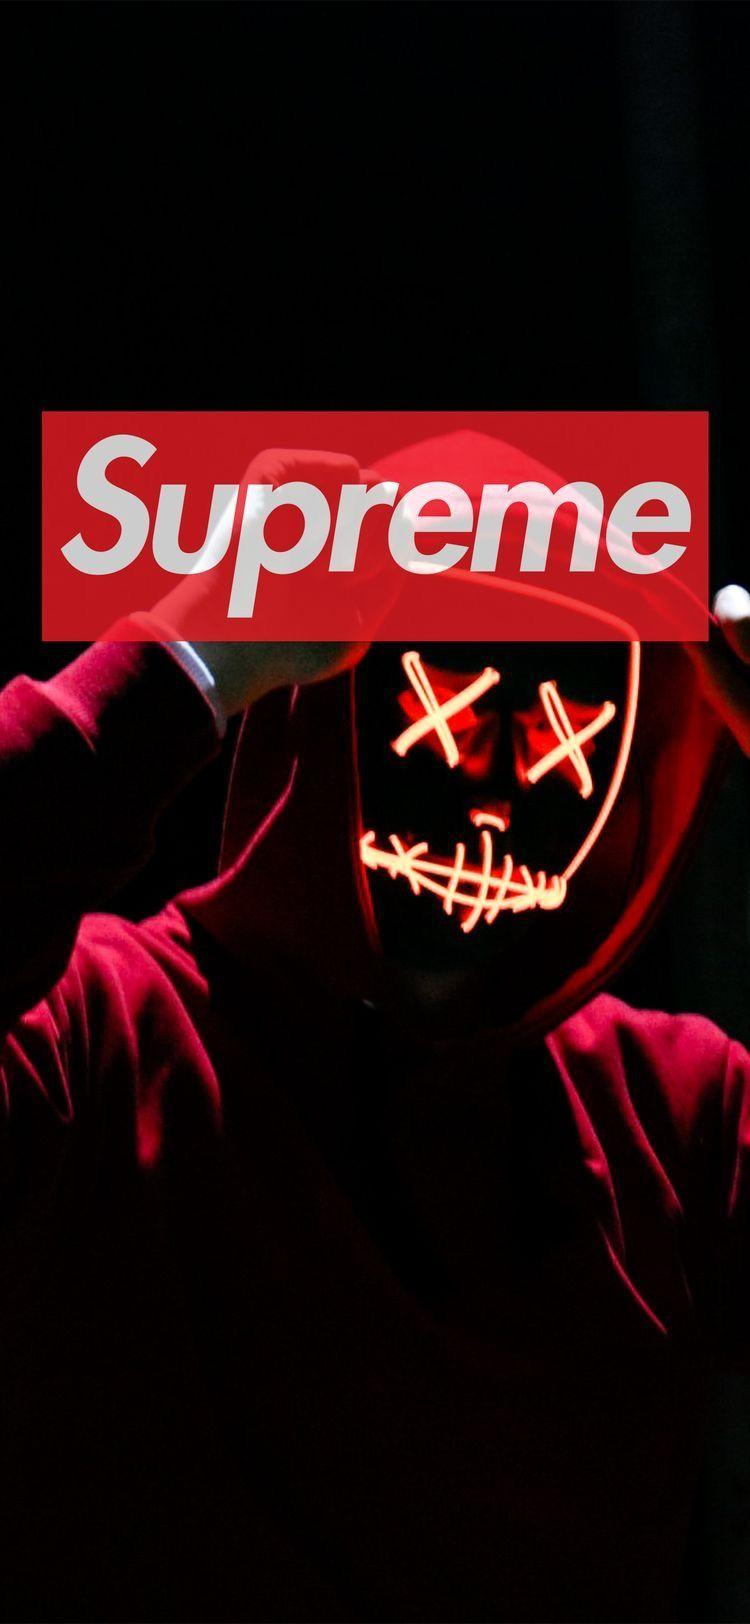 Supreme Iphone Xr Wallpapers Wallpaper Cave